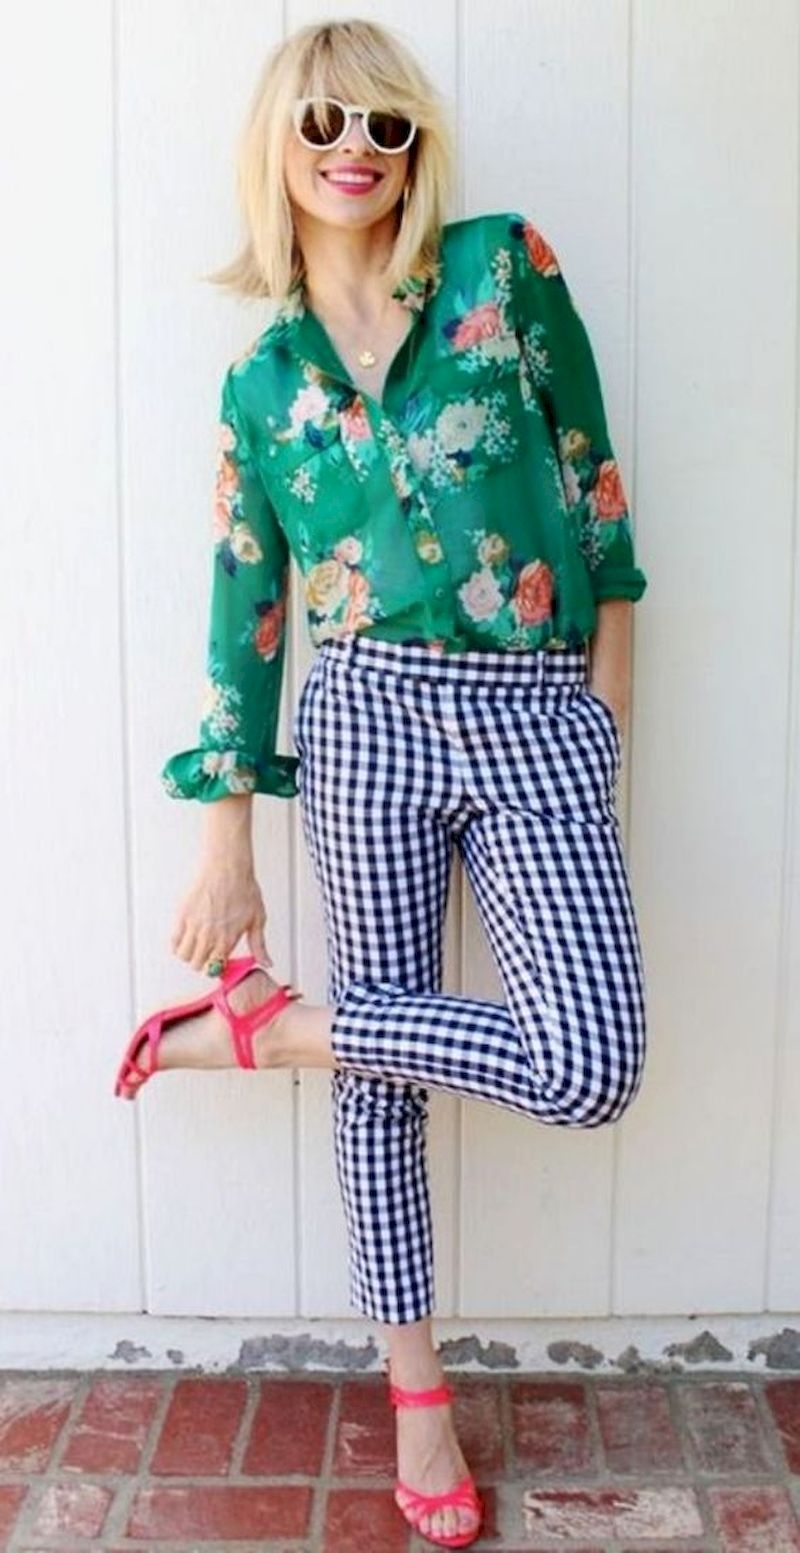 Spring outfit inspiration with floral shirt and plaid pant